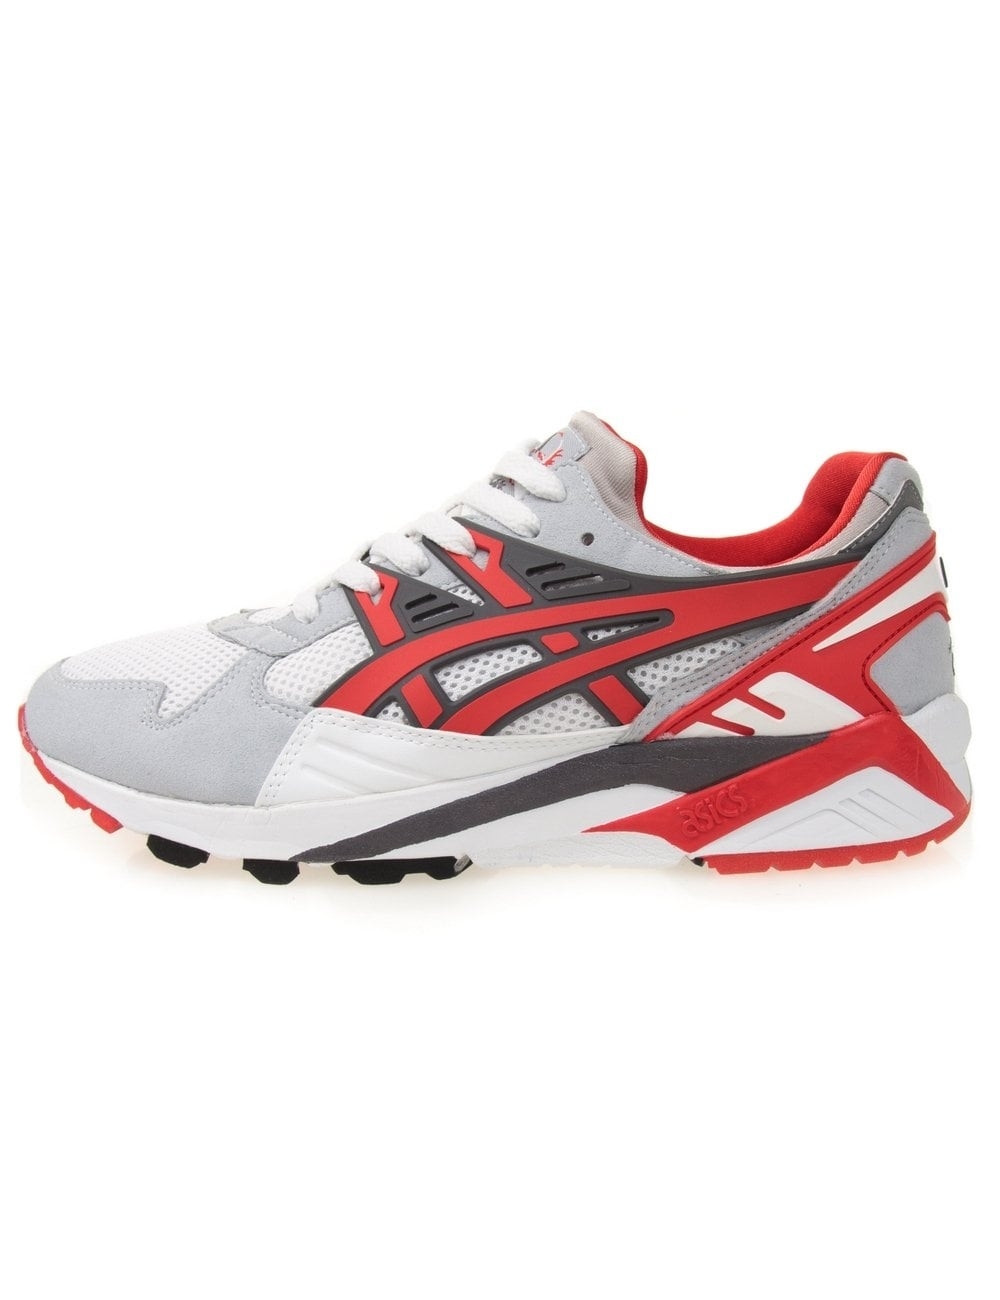 asics gel kayano shoes white fiery asics from